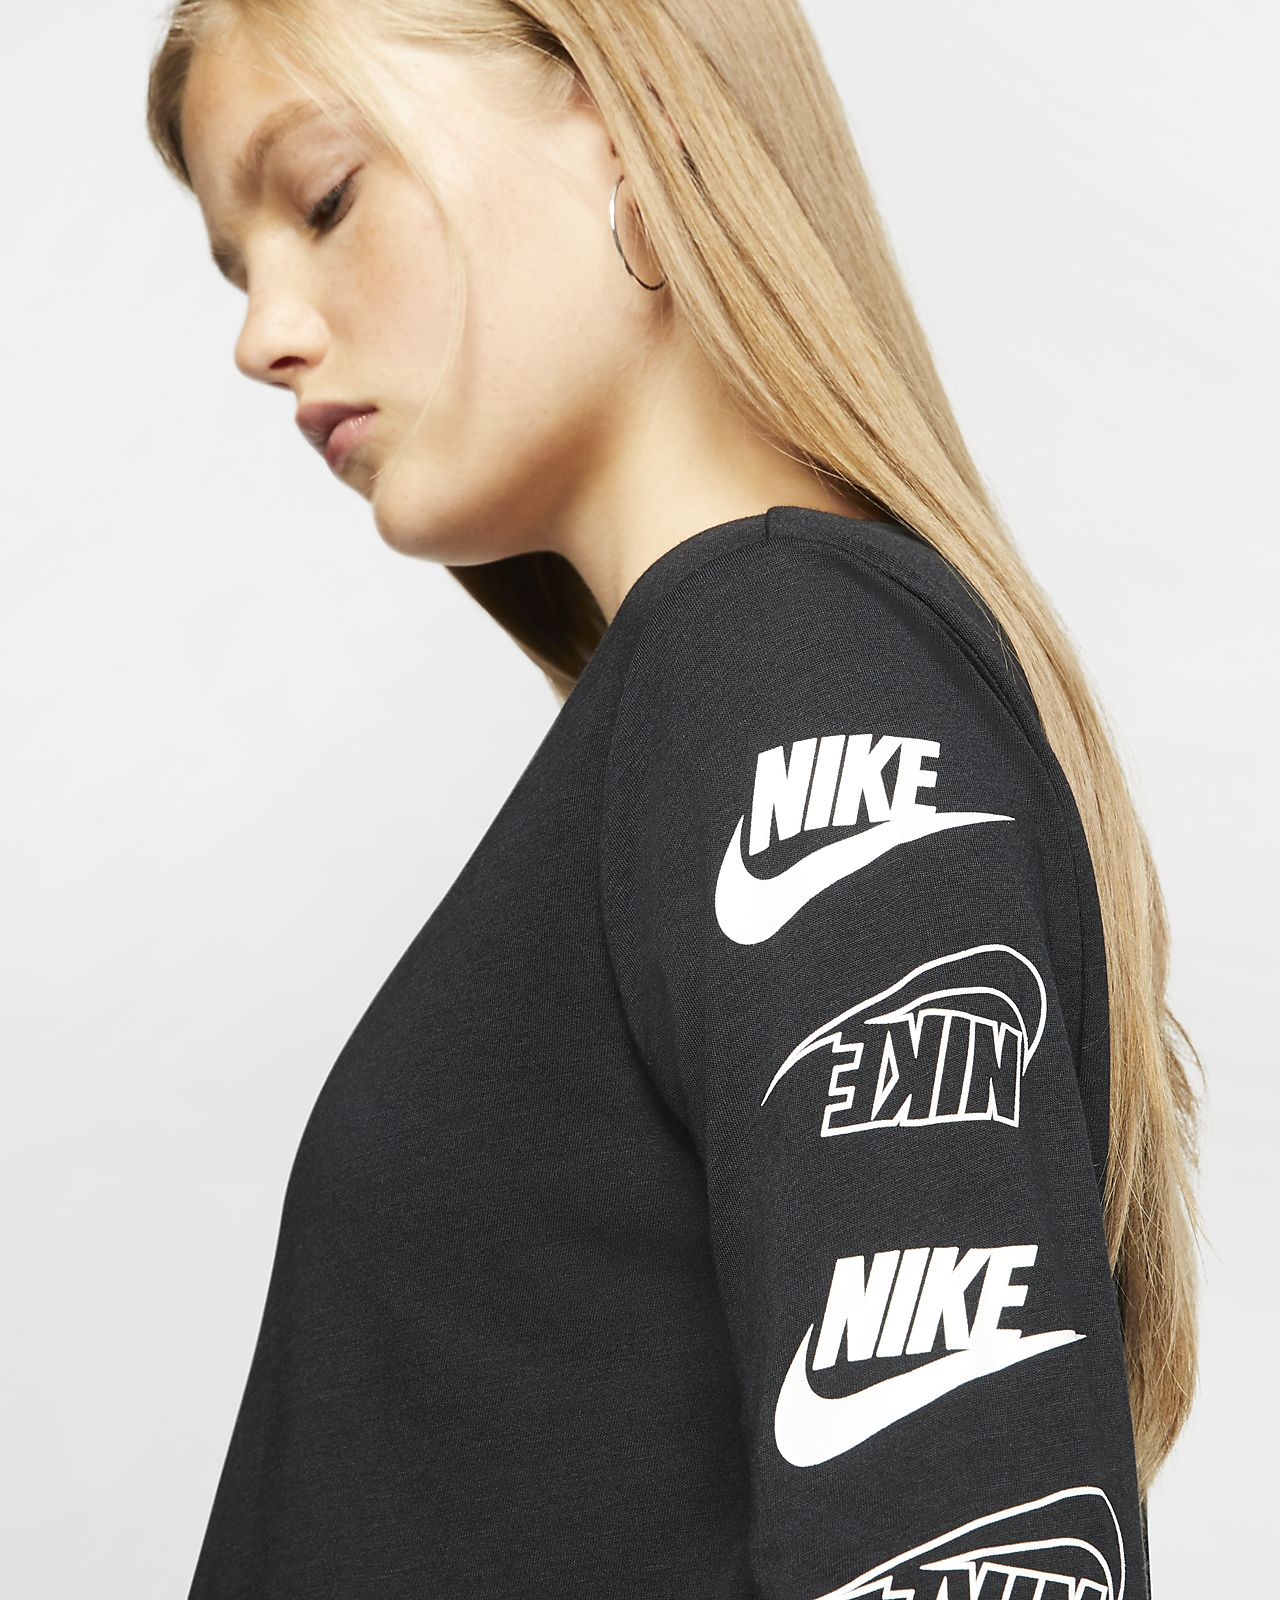 online here available amazing selection Tee-shirt à manches longues Nike Sportswear pour Femme